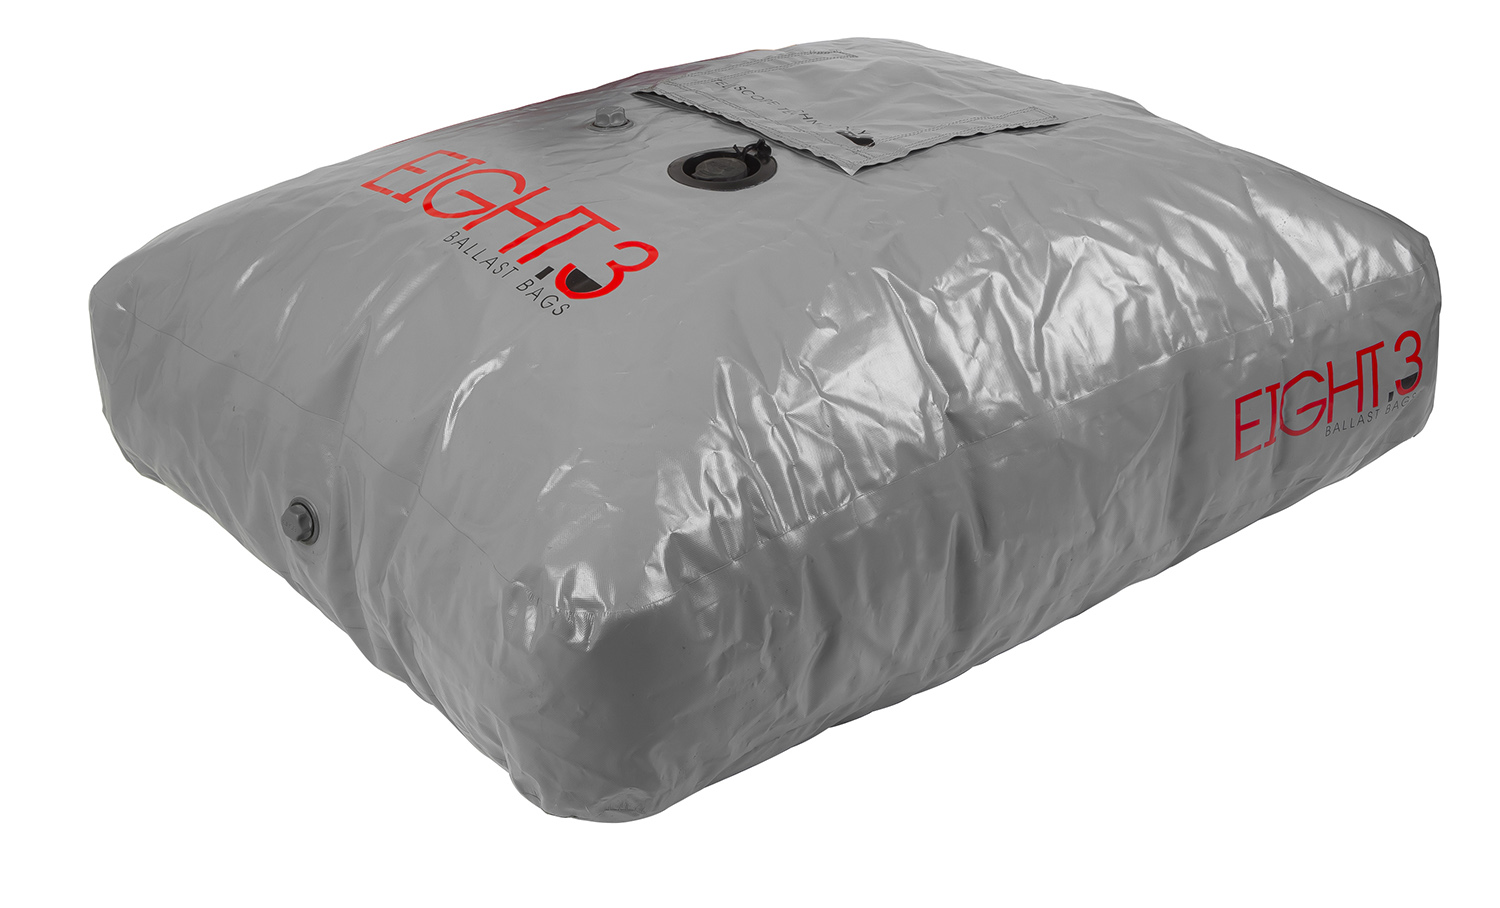 TELESCOPE - FLOOR - RECTANGLE - CTN 800LBS/360KG BALLAST BAG EIGHT.3 2017